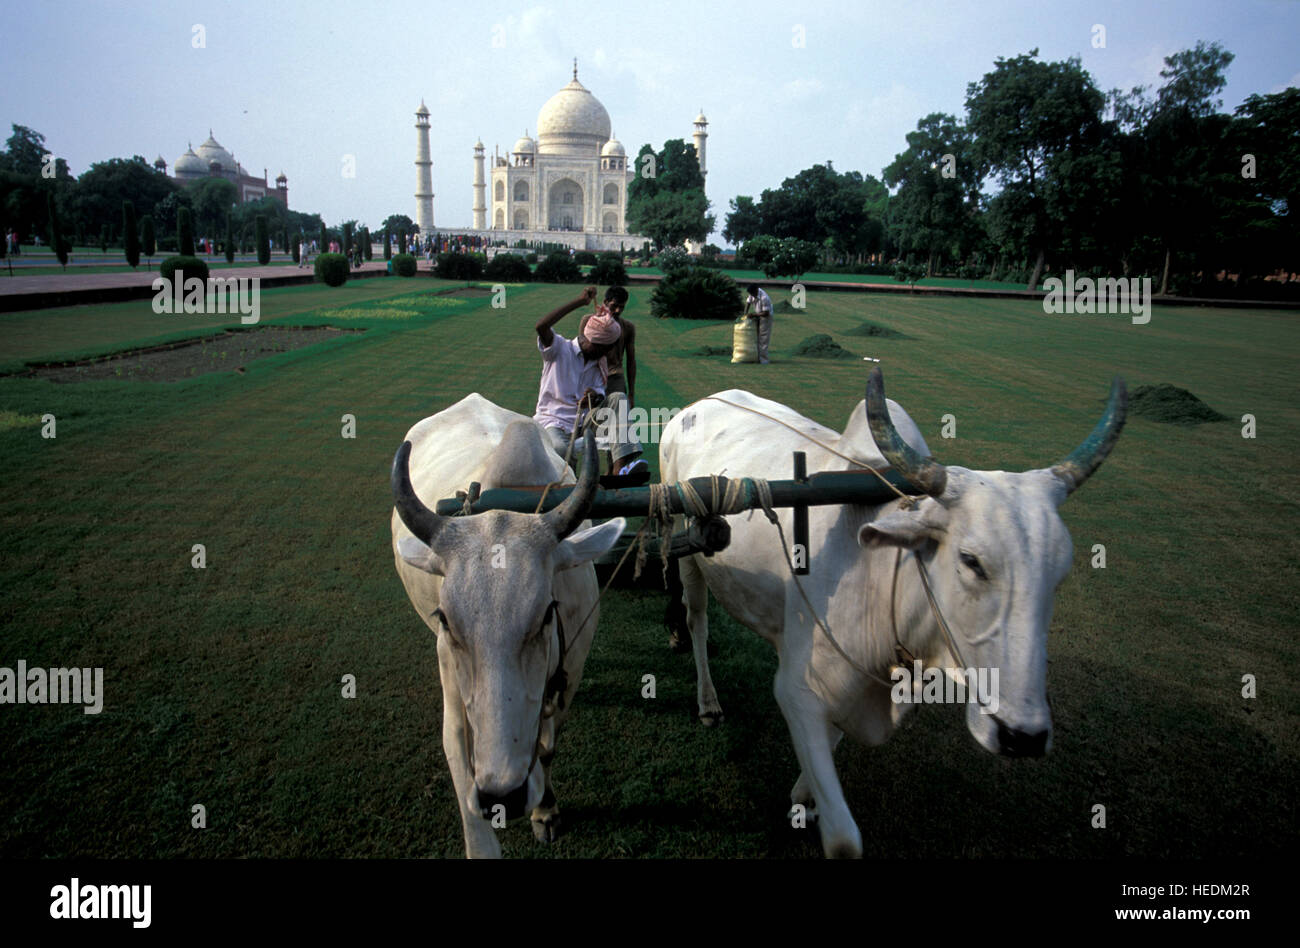 Pollution-free lawn mowing in the World wonder Taj Mahal 'the Taj',  a white marble mausoleum. - Stock Image